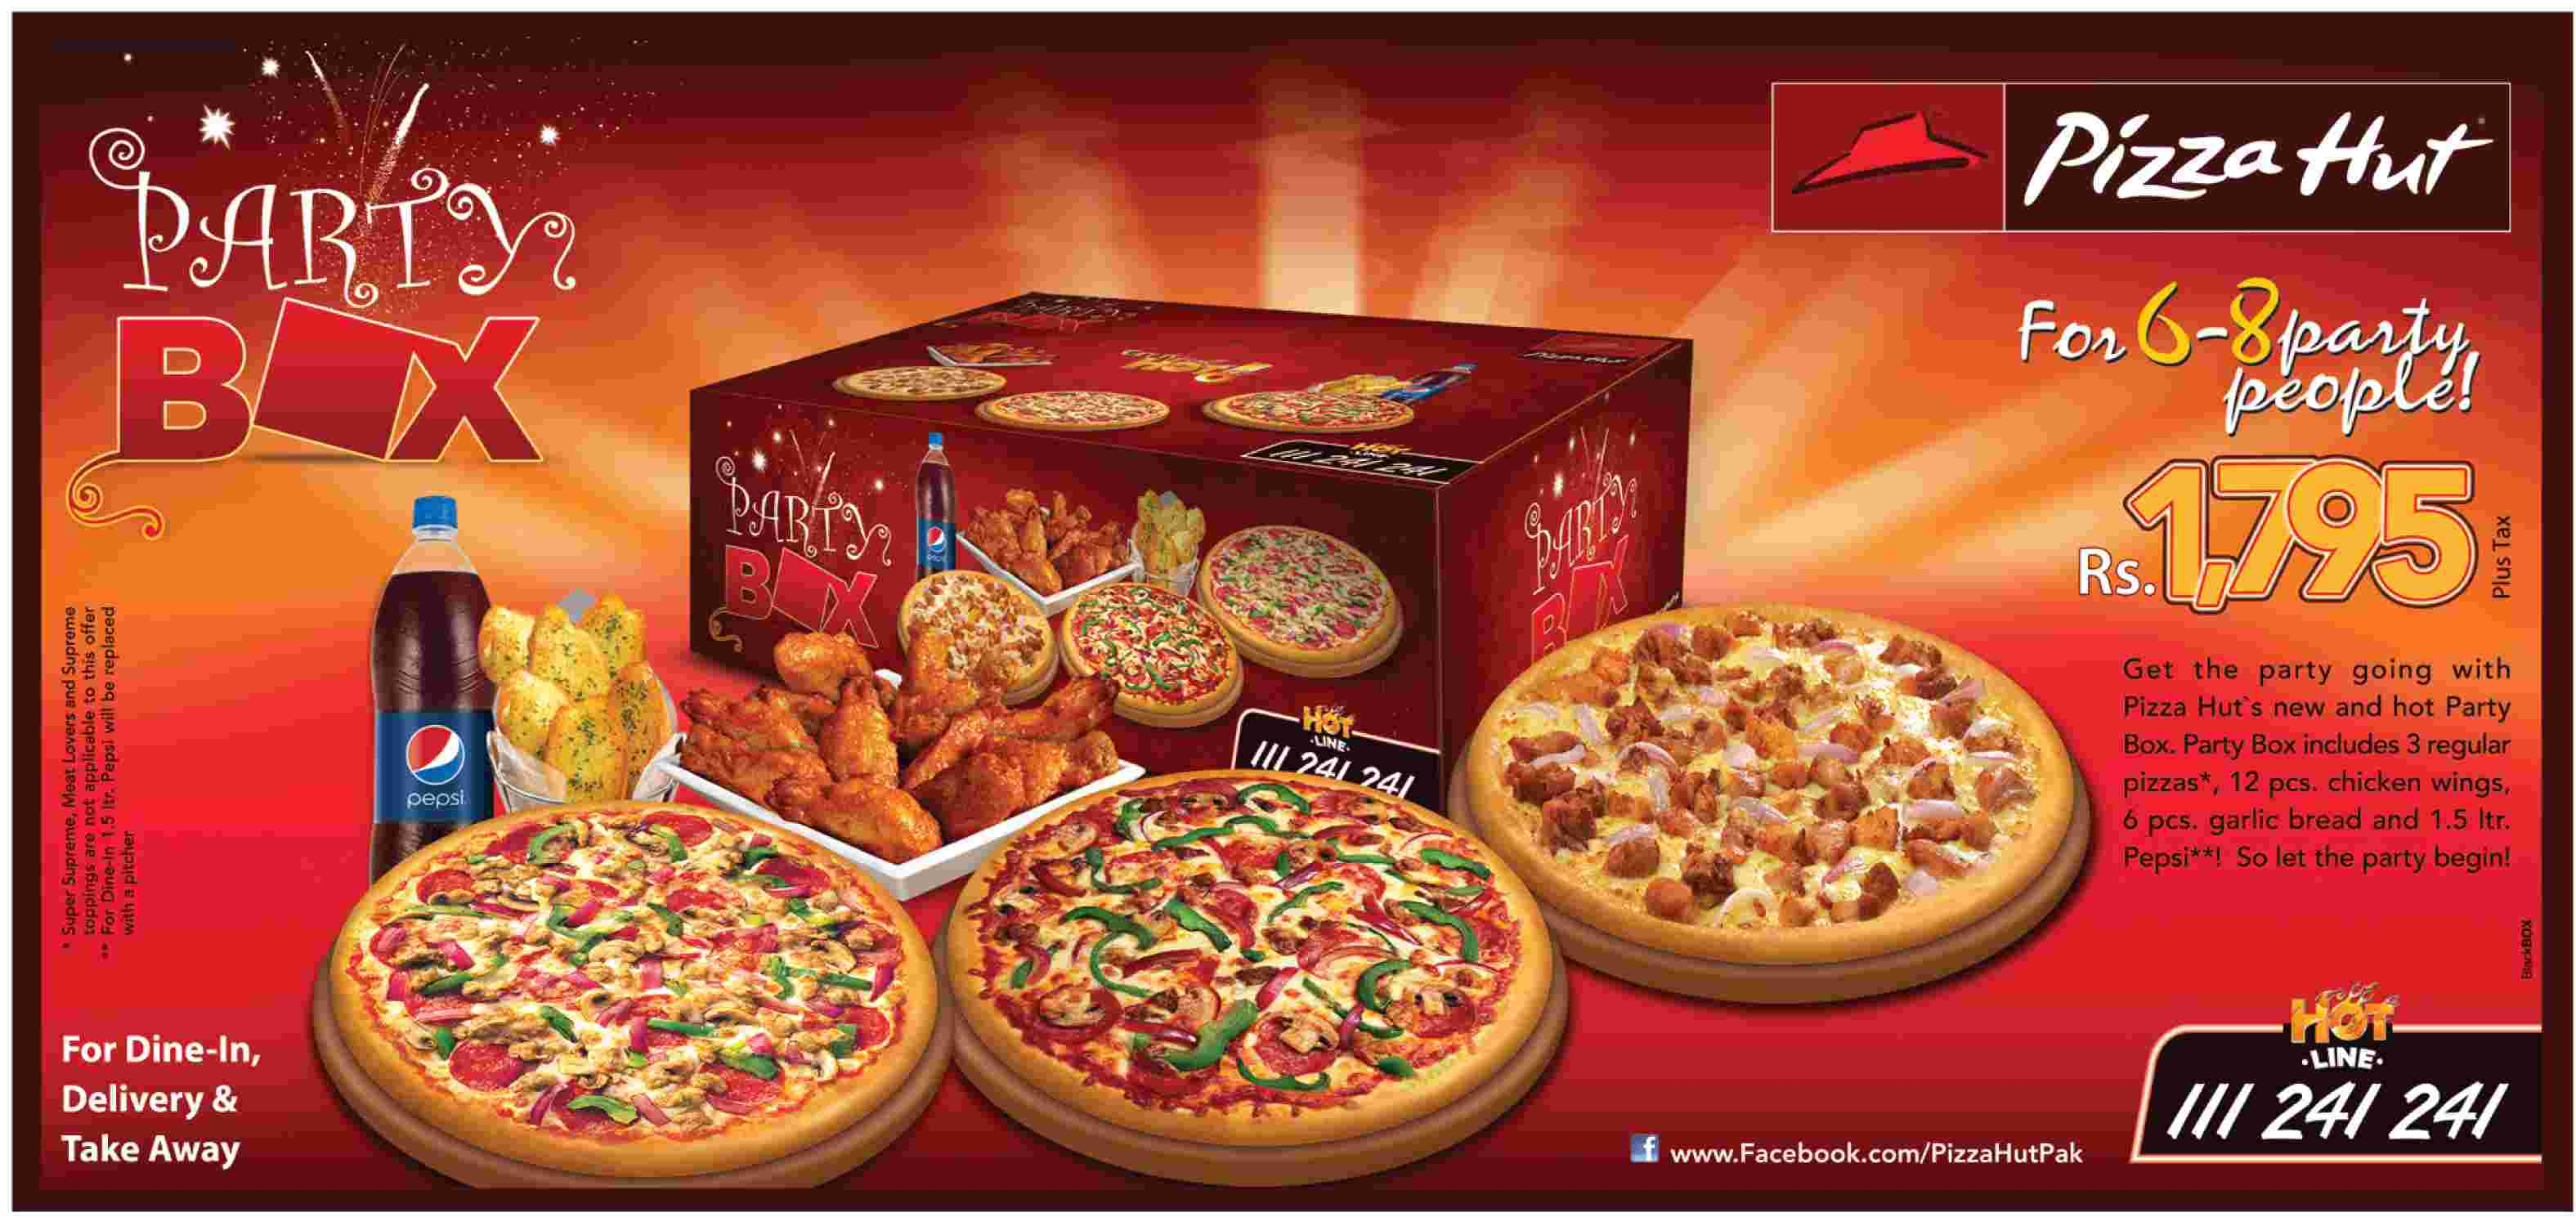 Deals In Pakistan Pizza Hut PARTY BOX - Childrens birthday parties pizza hut